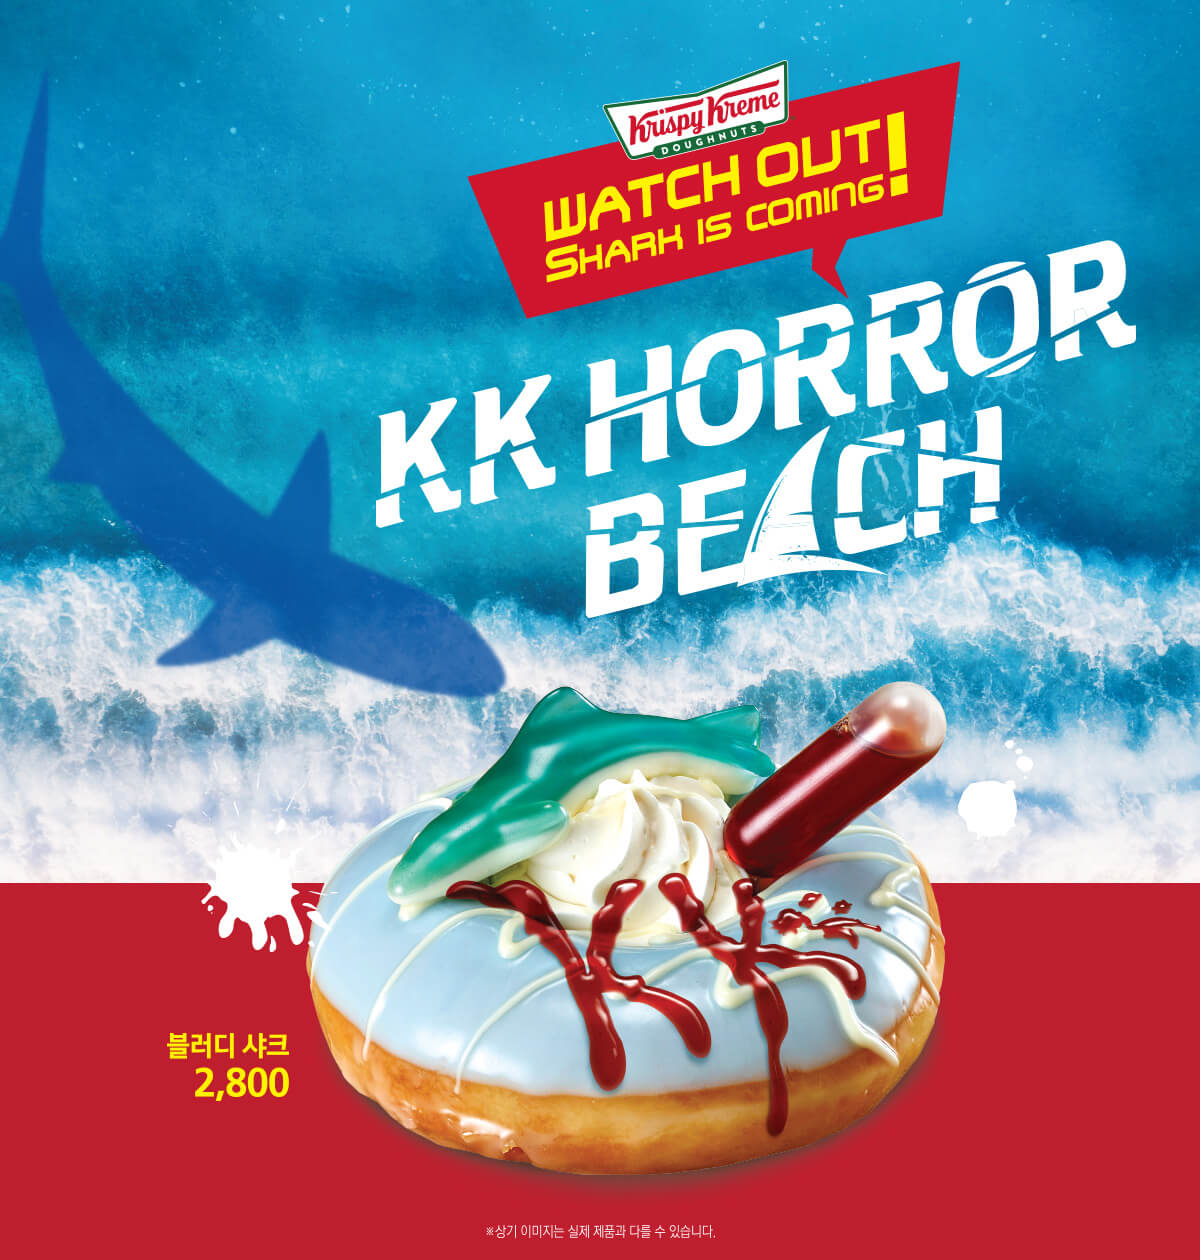 KK HORROR BEACH